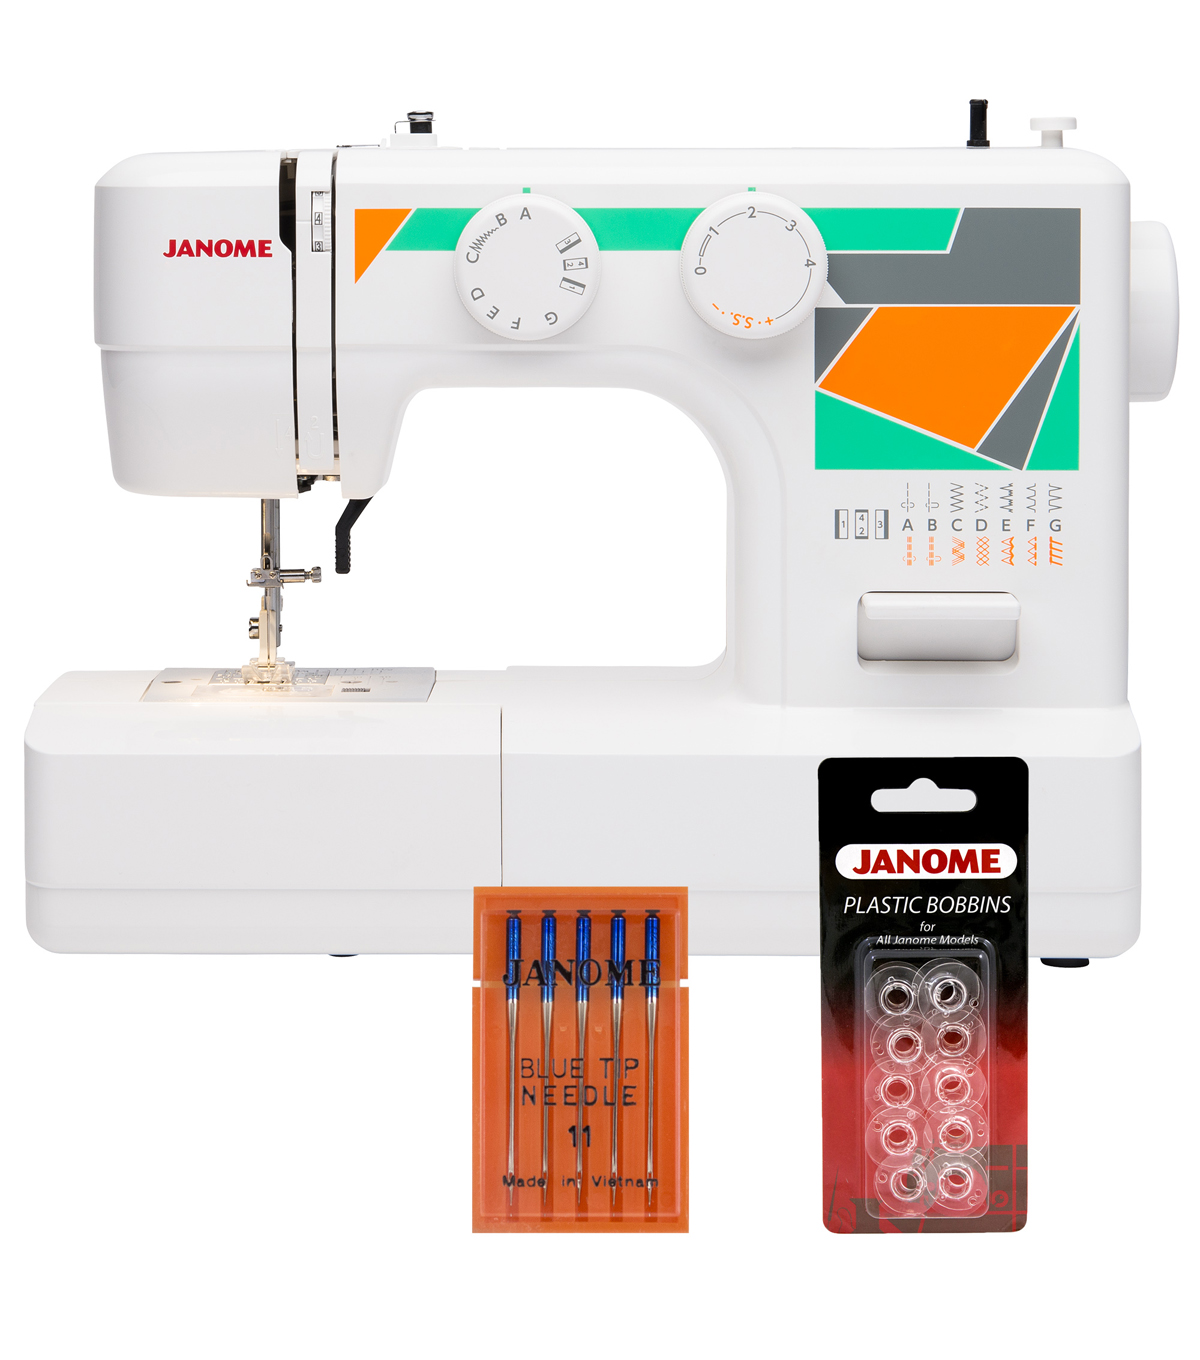 Janome MOD-15 Sewing Machine with Bonus Accessories